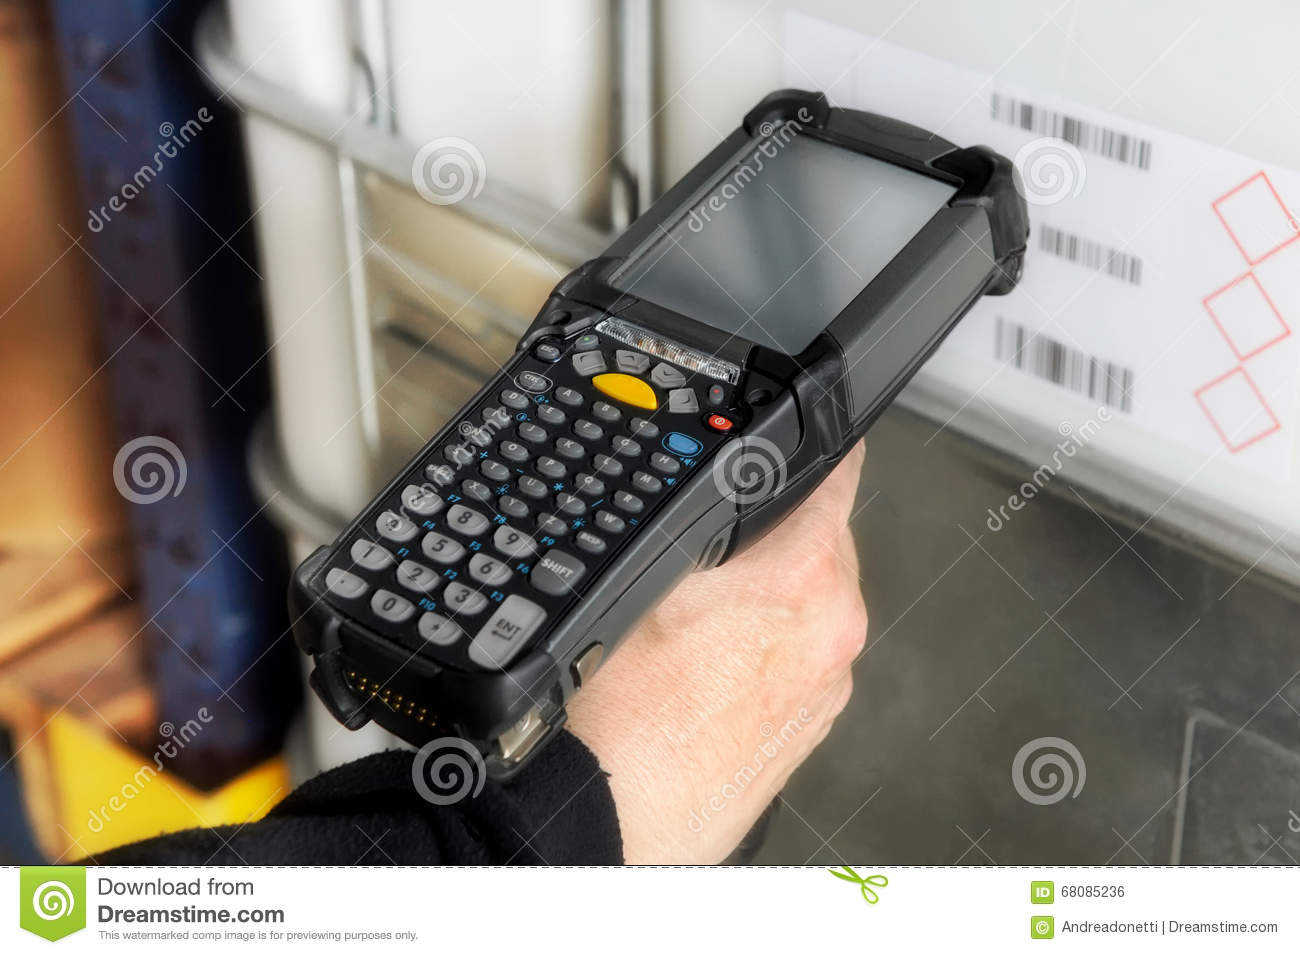 Person Scanning A Barcode With A Scanner Stock Photo - Image: 68085236